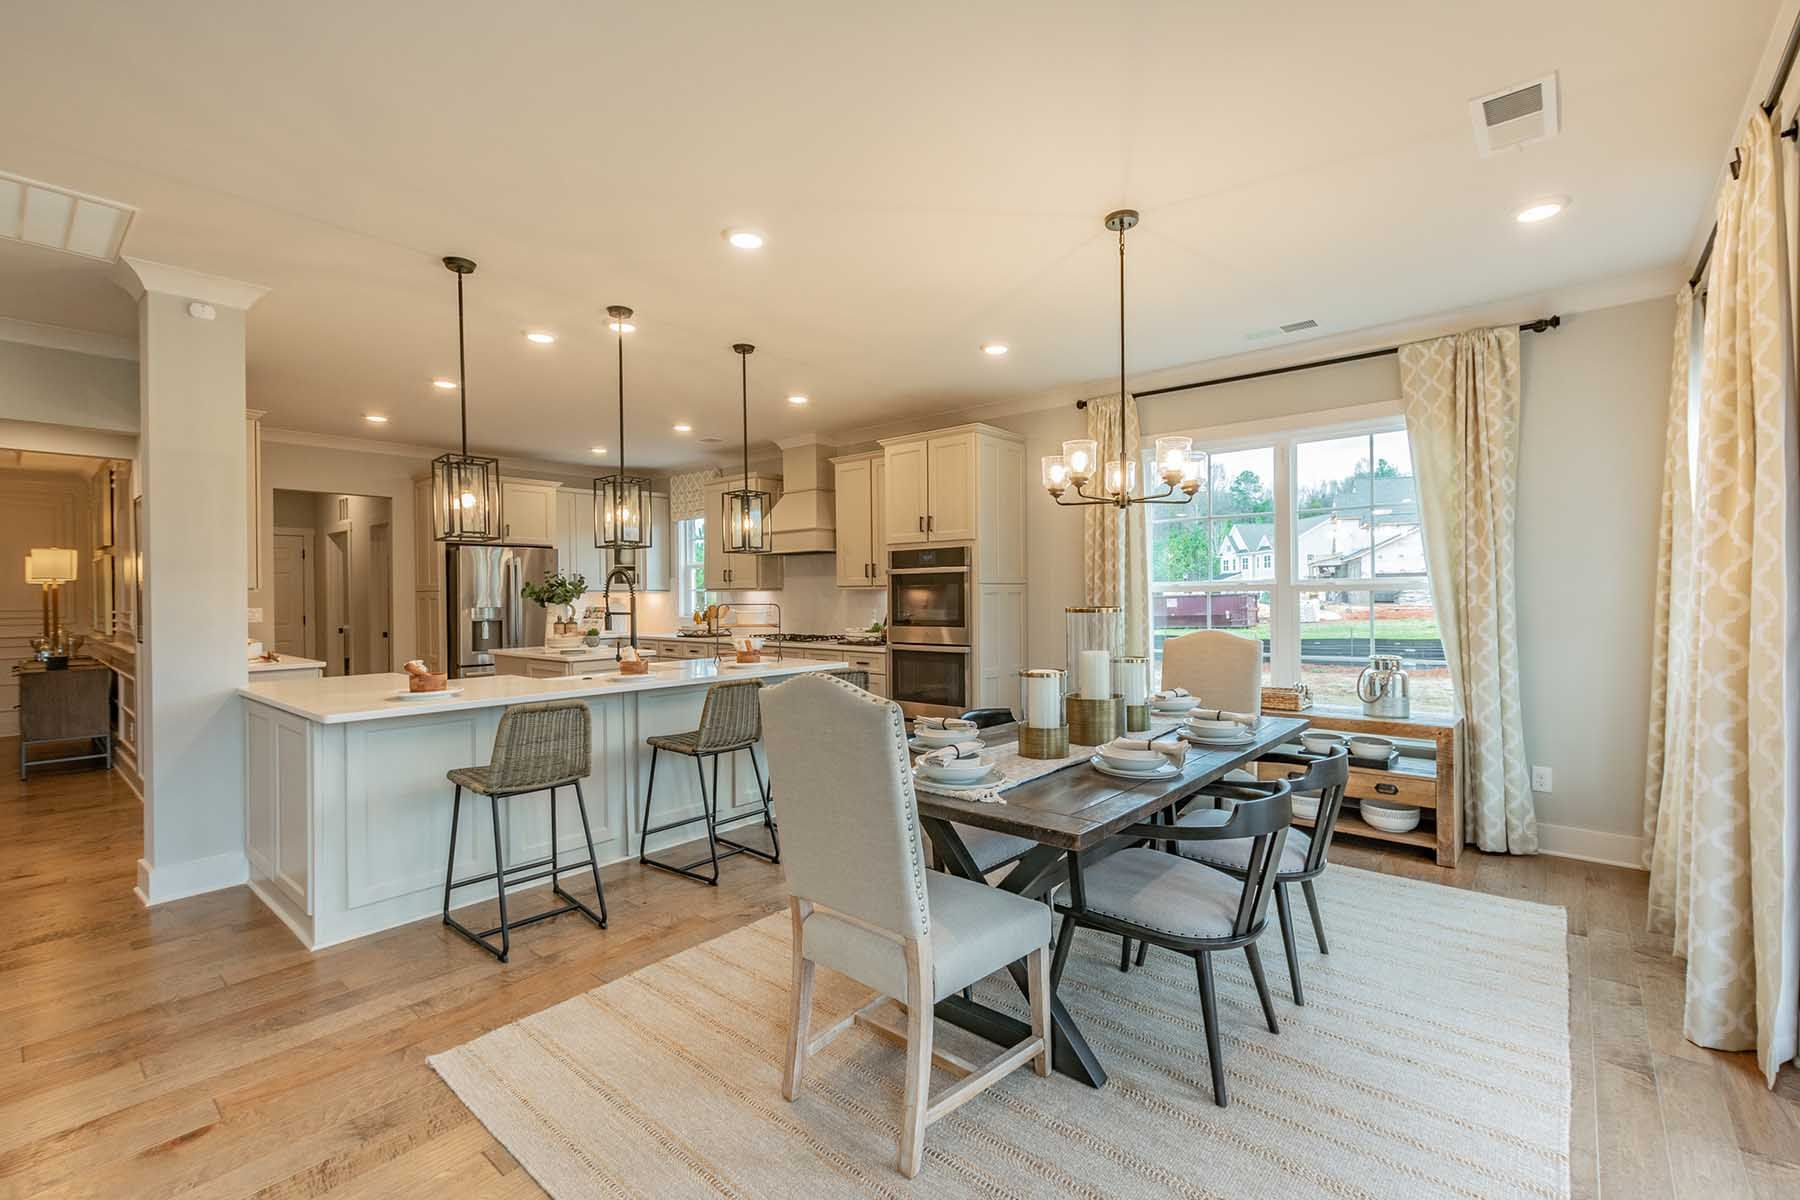 Kitchen featured in the Blythe By M/I Homes in Charlotte, SC